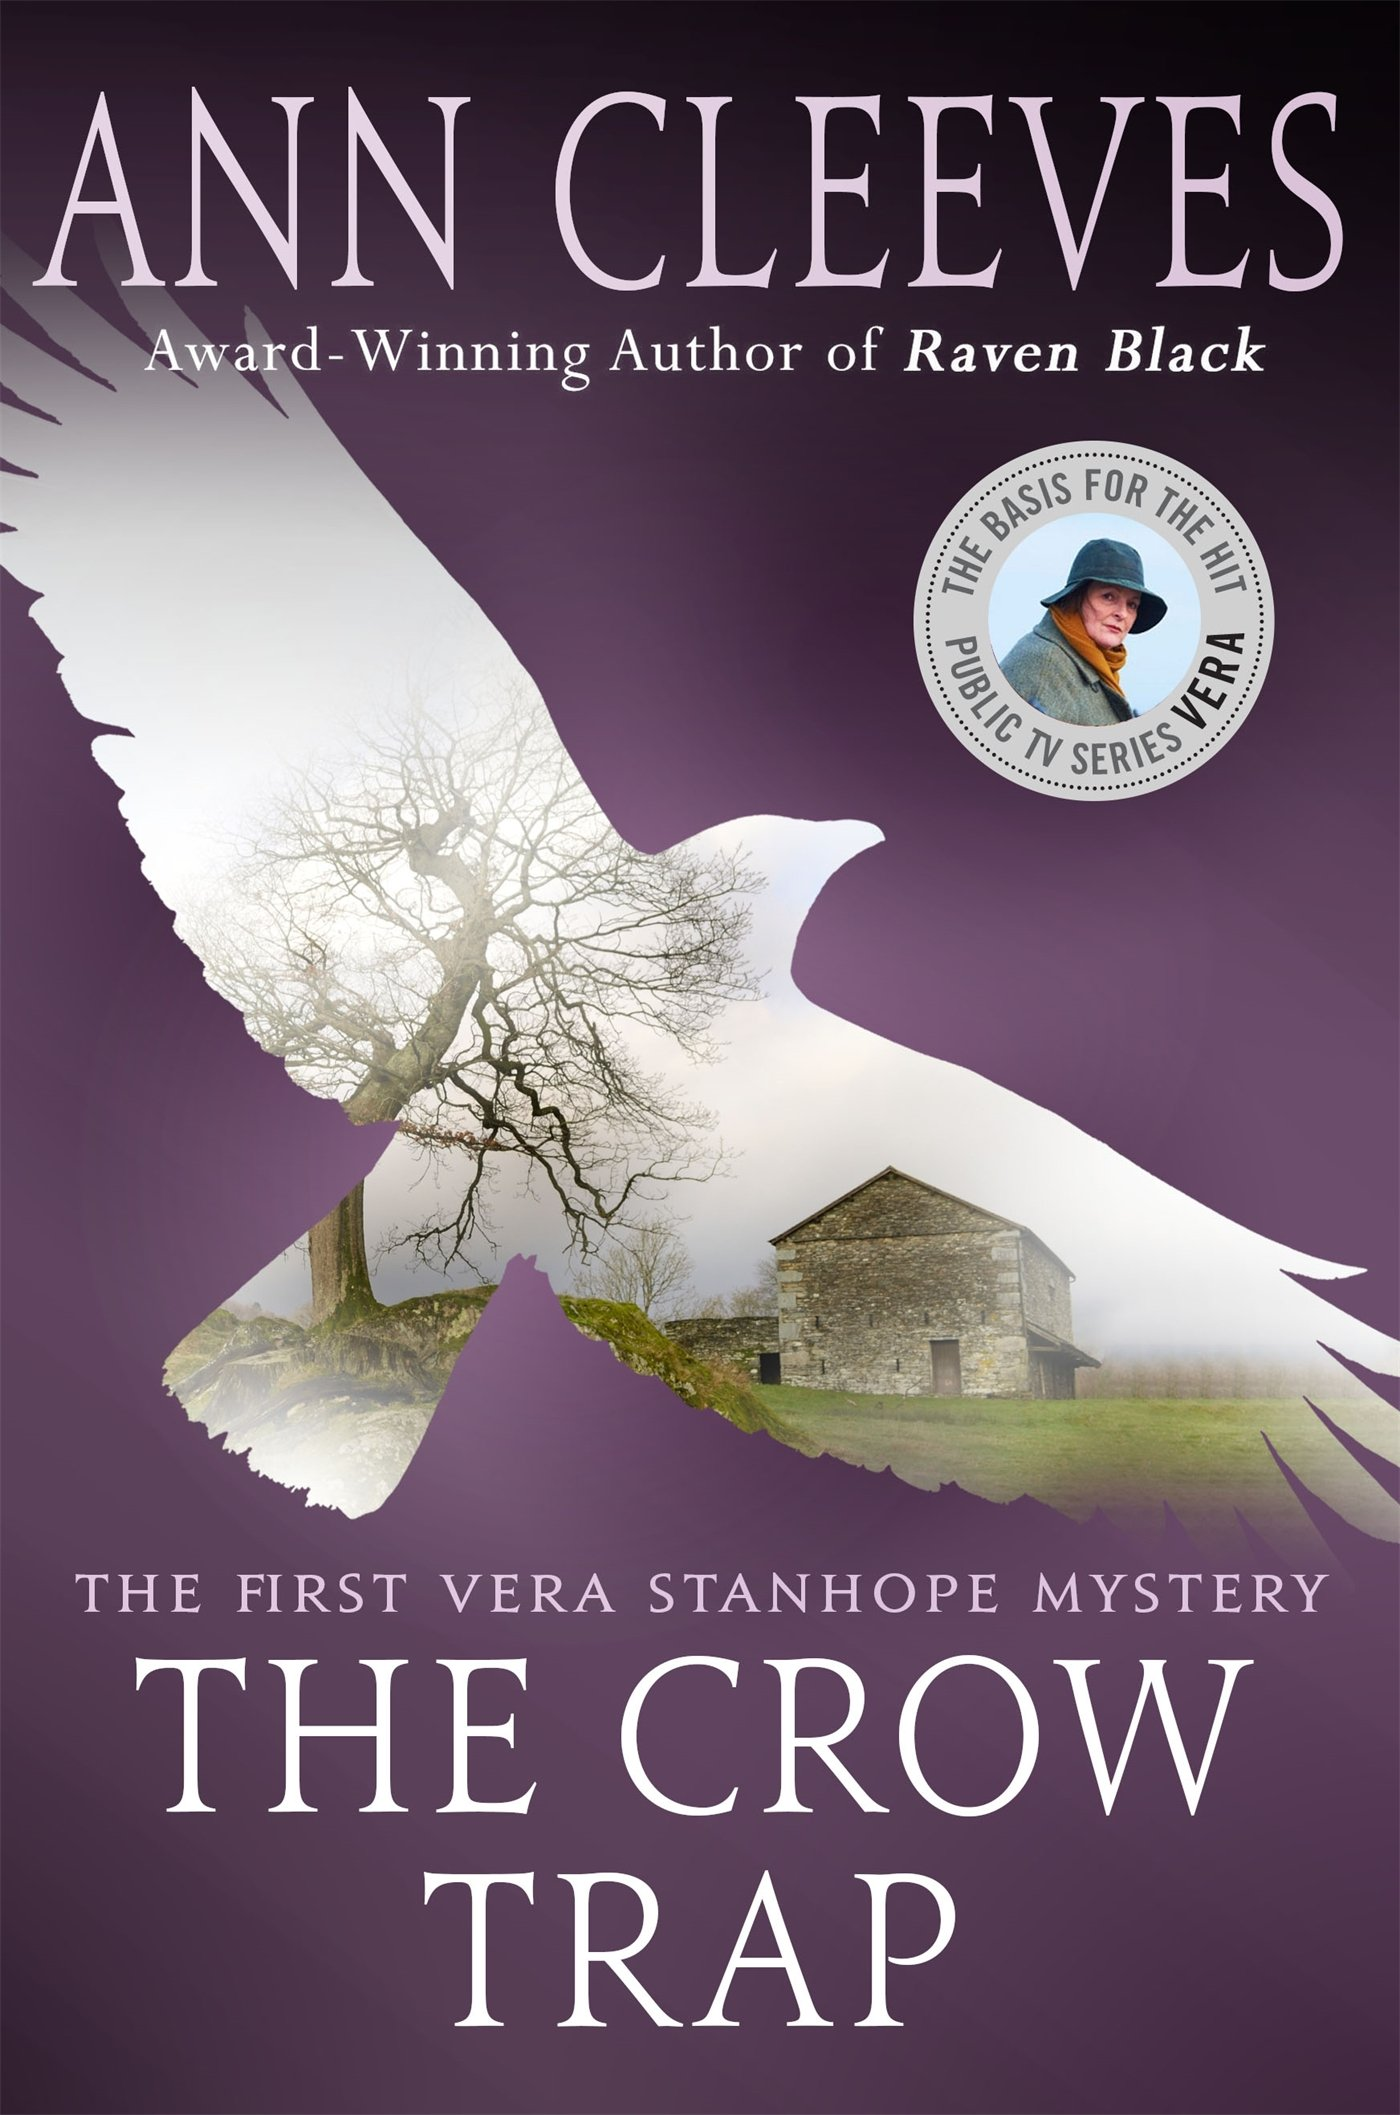 British Mysteries Book Club - The Crow Trap by Ann Cleaves